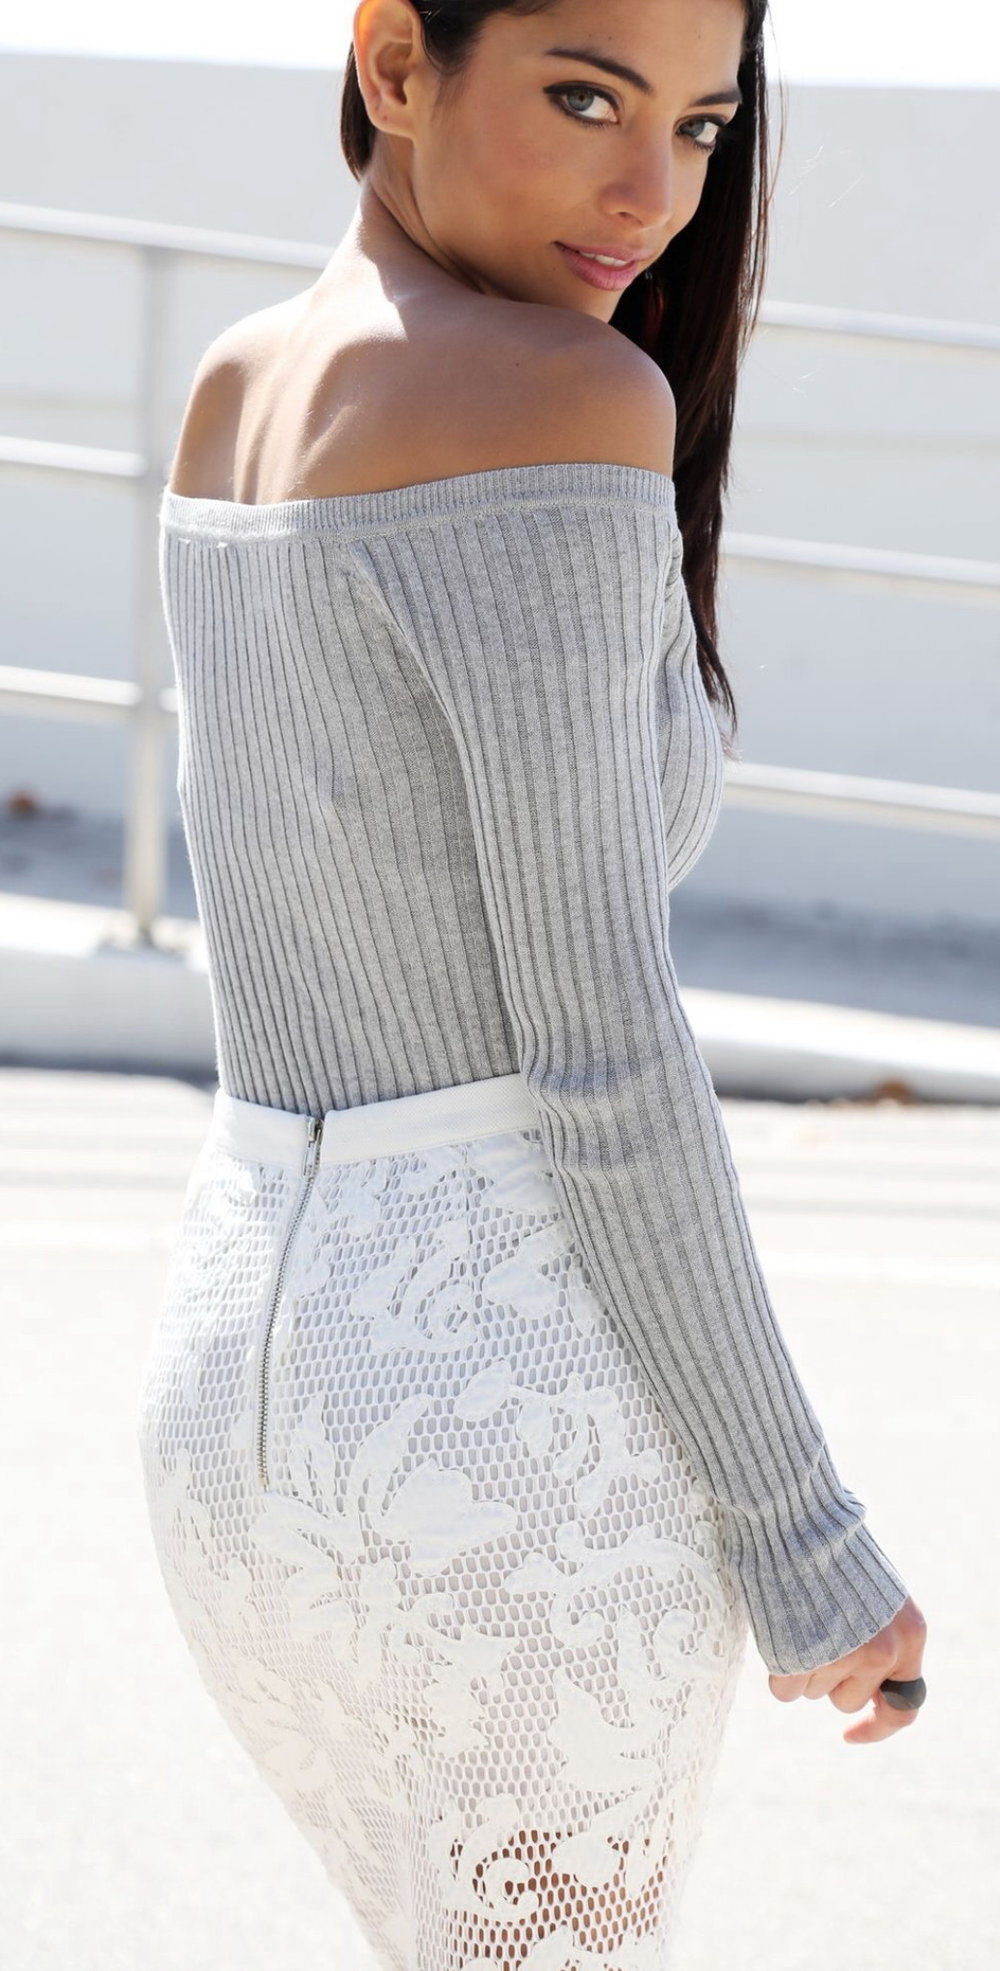 http://theconcreterunway.com/product/off-the-shoulder-grey-knit-top/